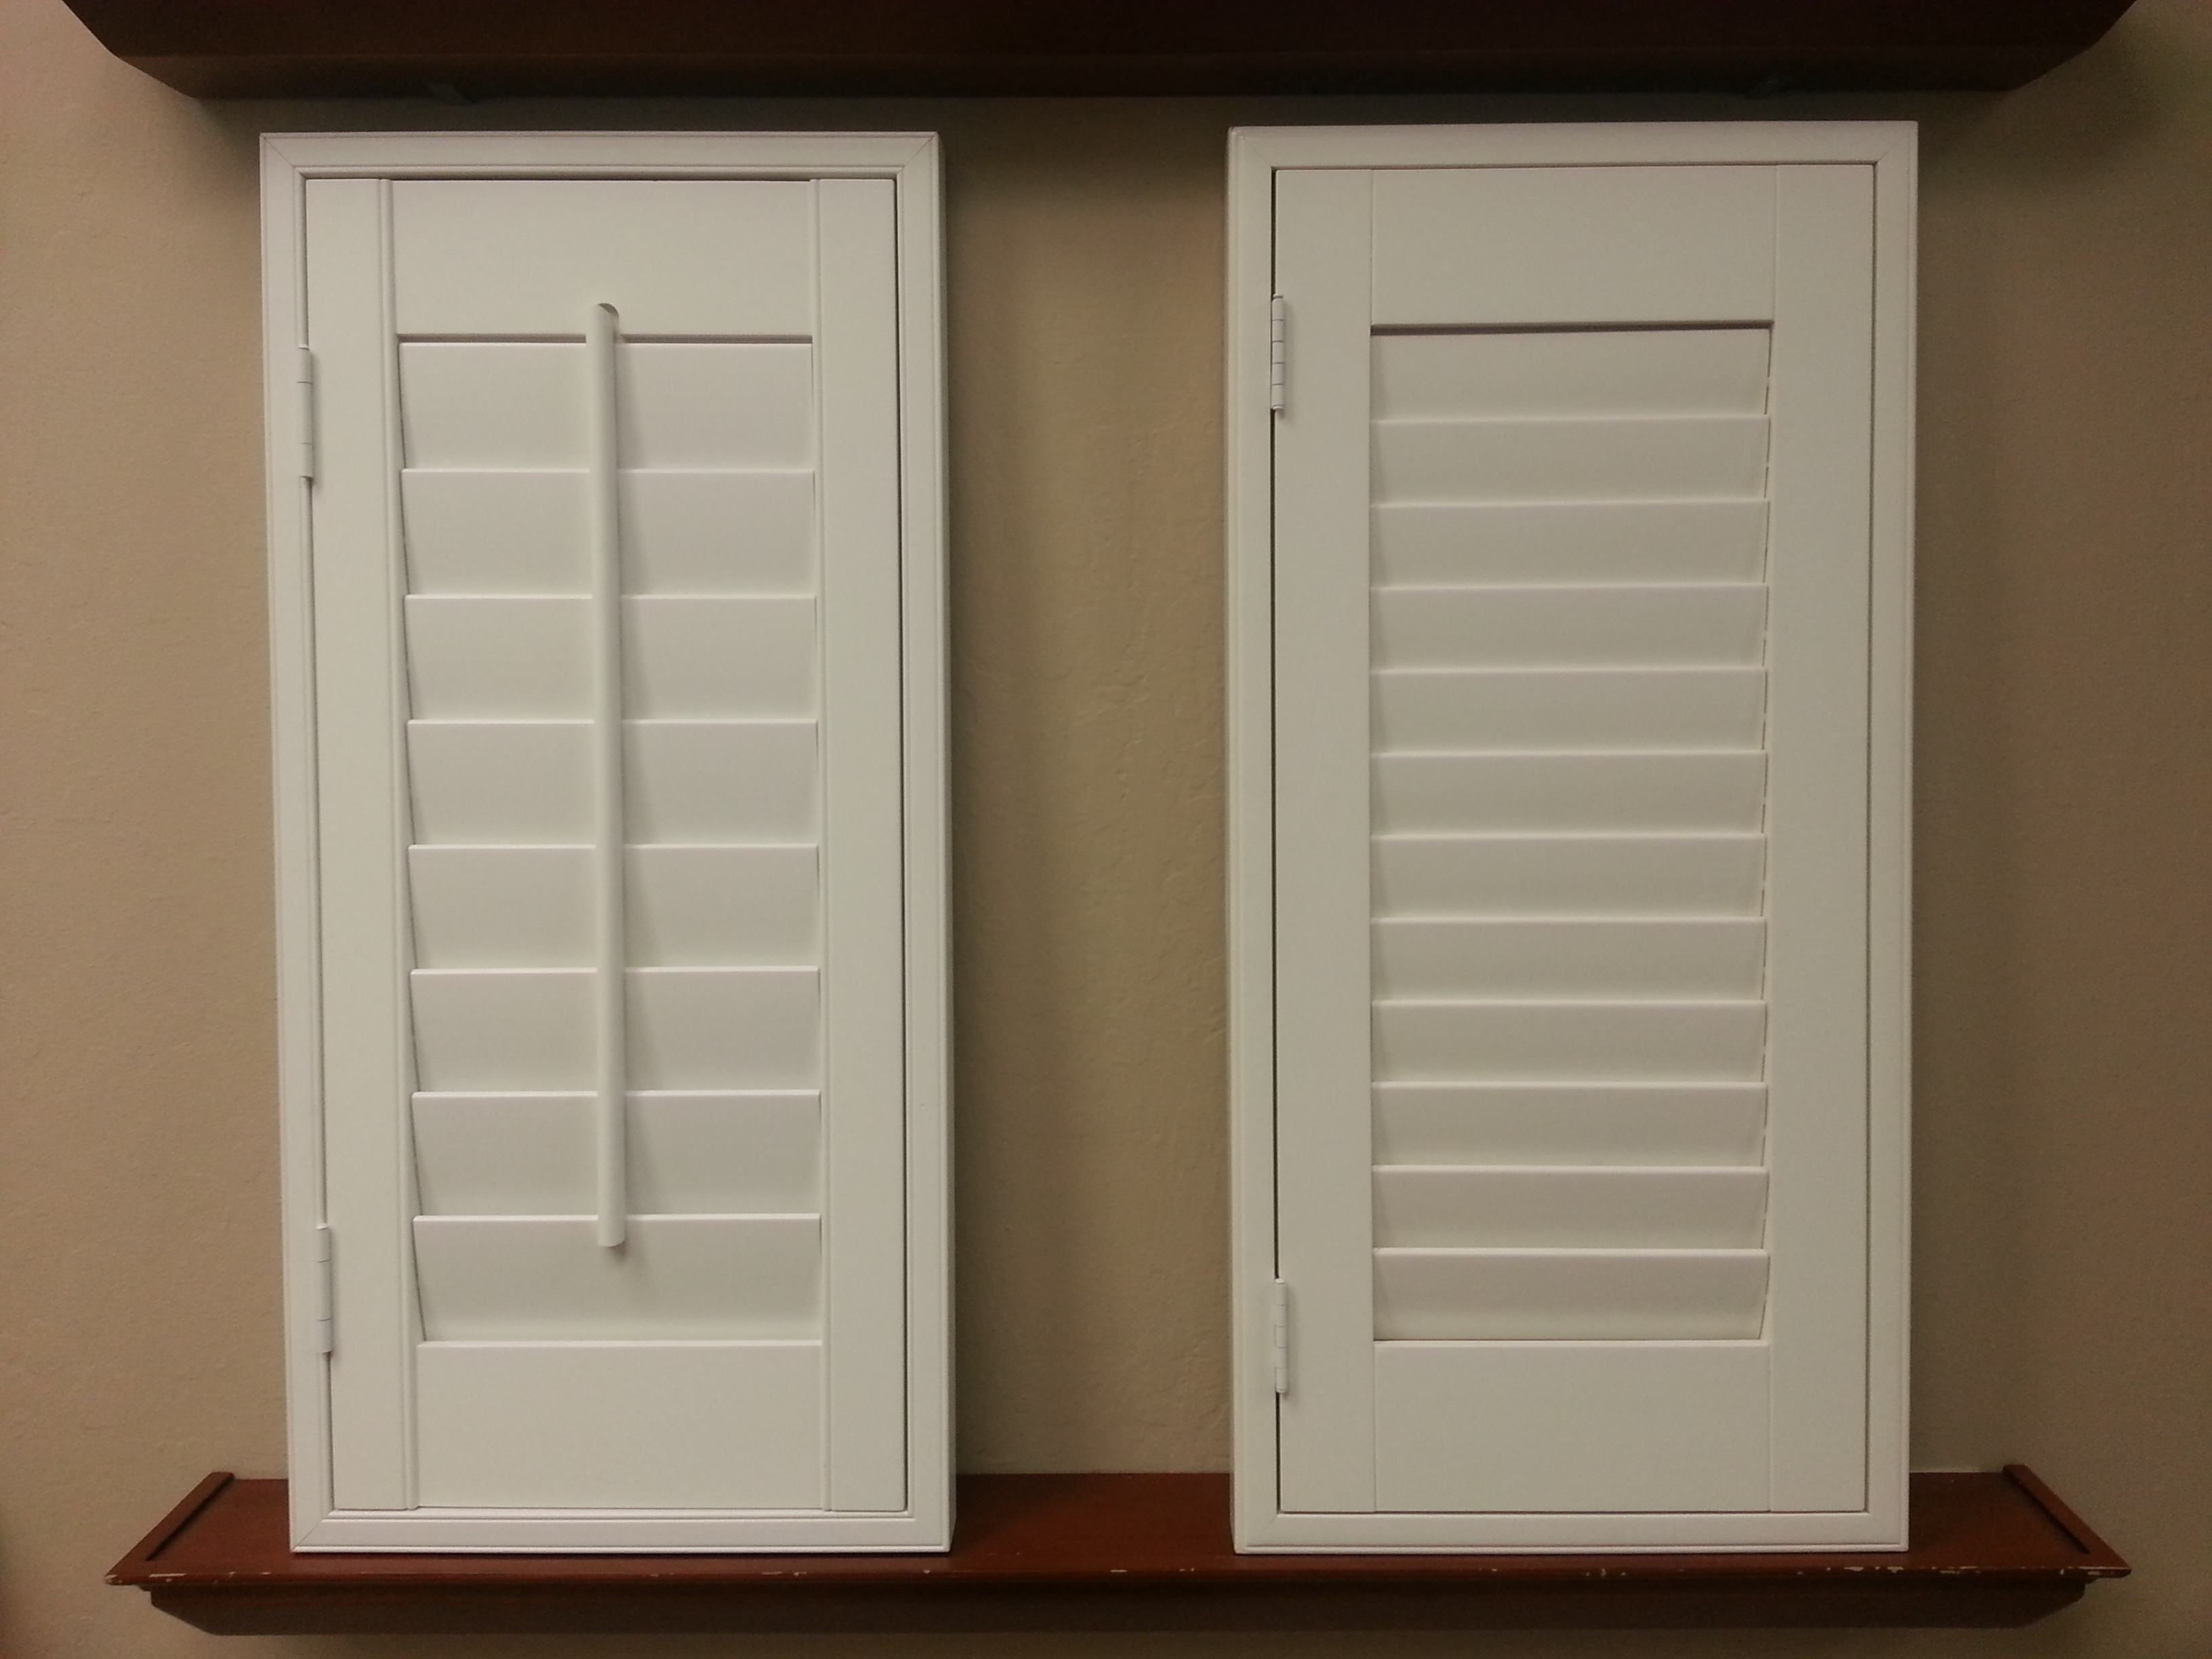 window shutters plantation shutter standard tilt bar next to a clearview hidden tilt ODTMHHW